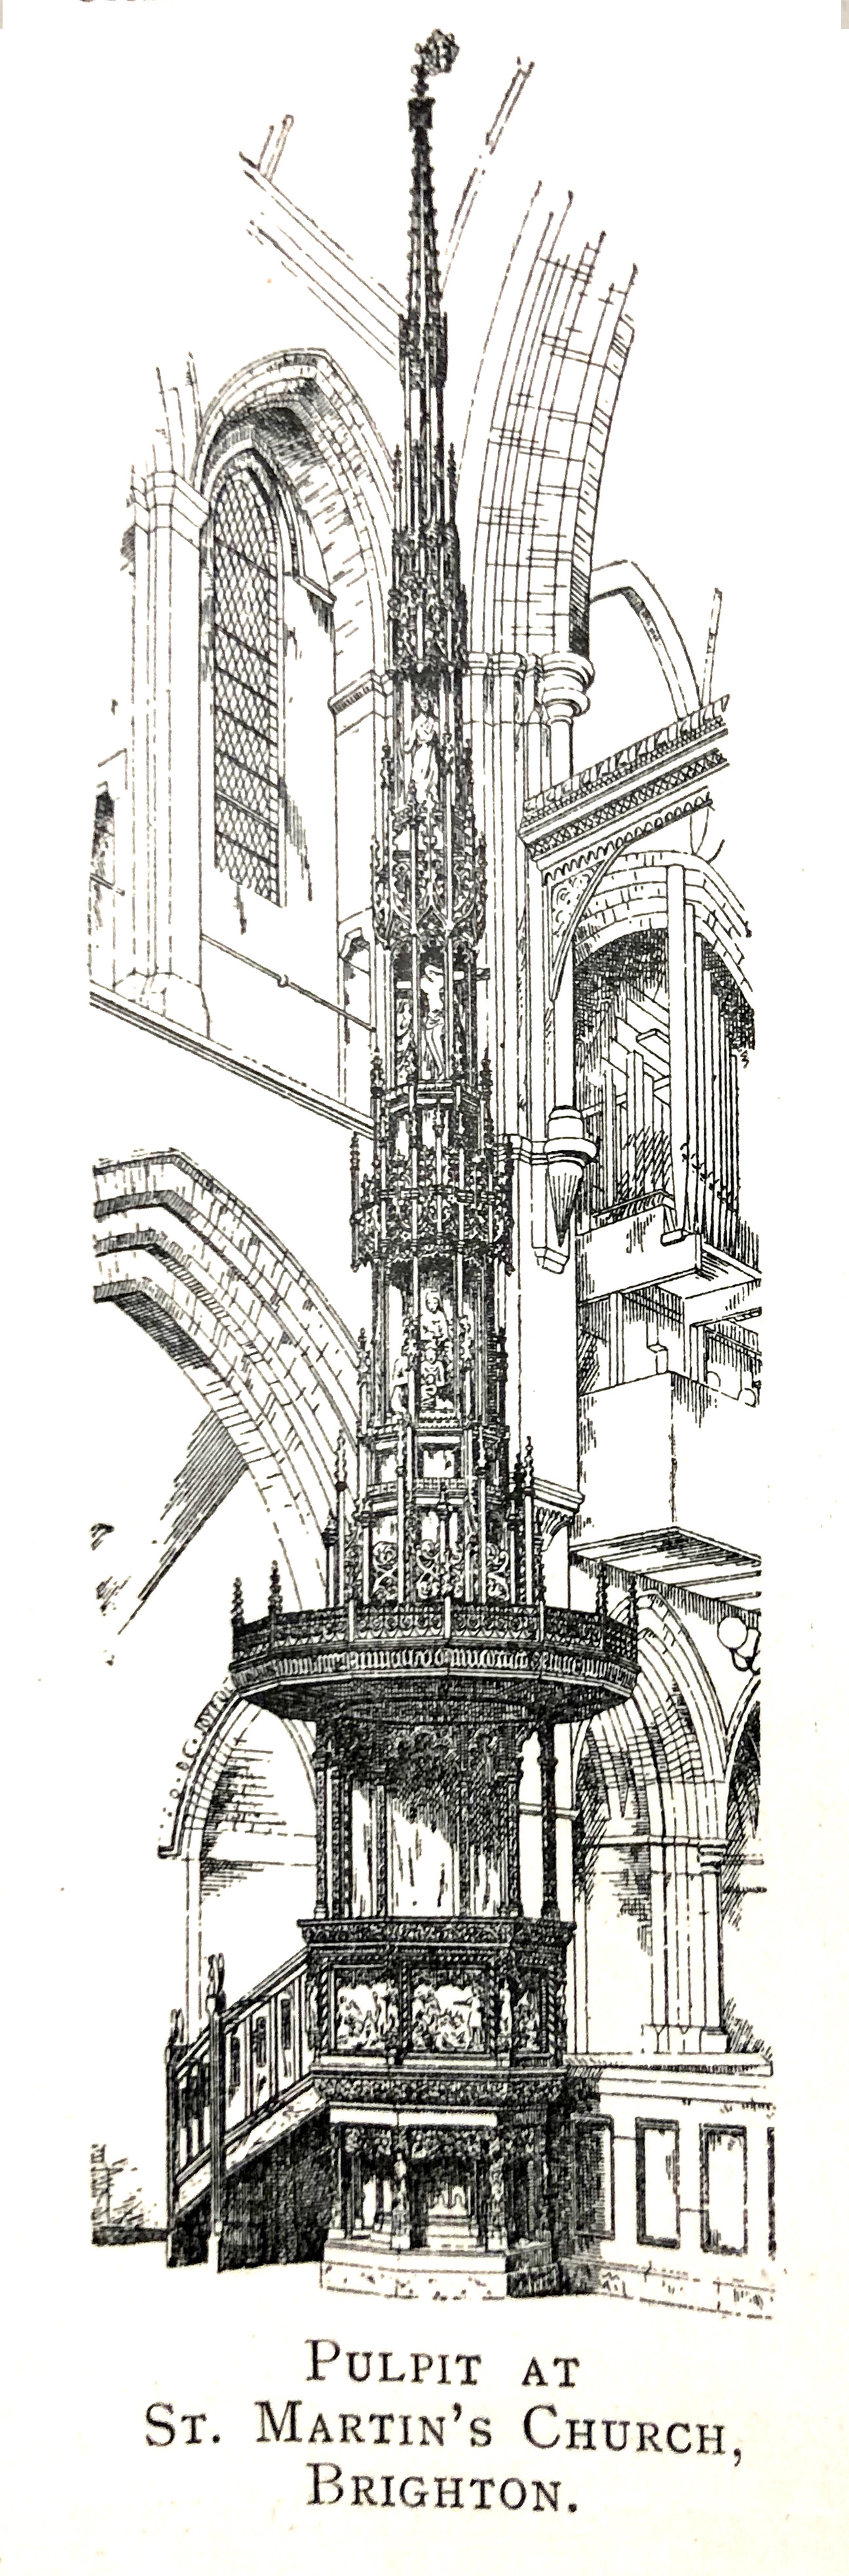 Dessin en noir et blanc de la chaire de l'église St. Martin, en Angleterre. // Black and white drawing of the St. Martin's Church pulpit in England.